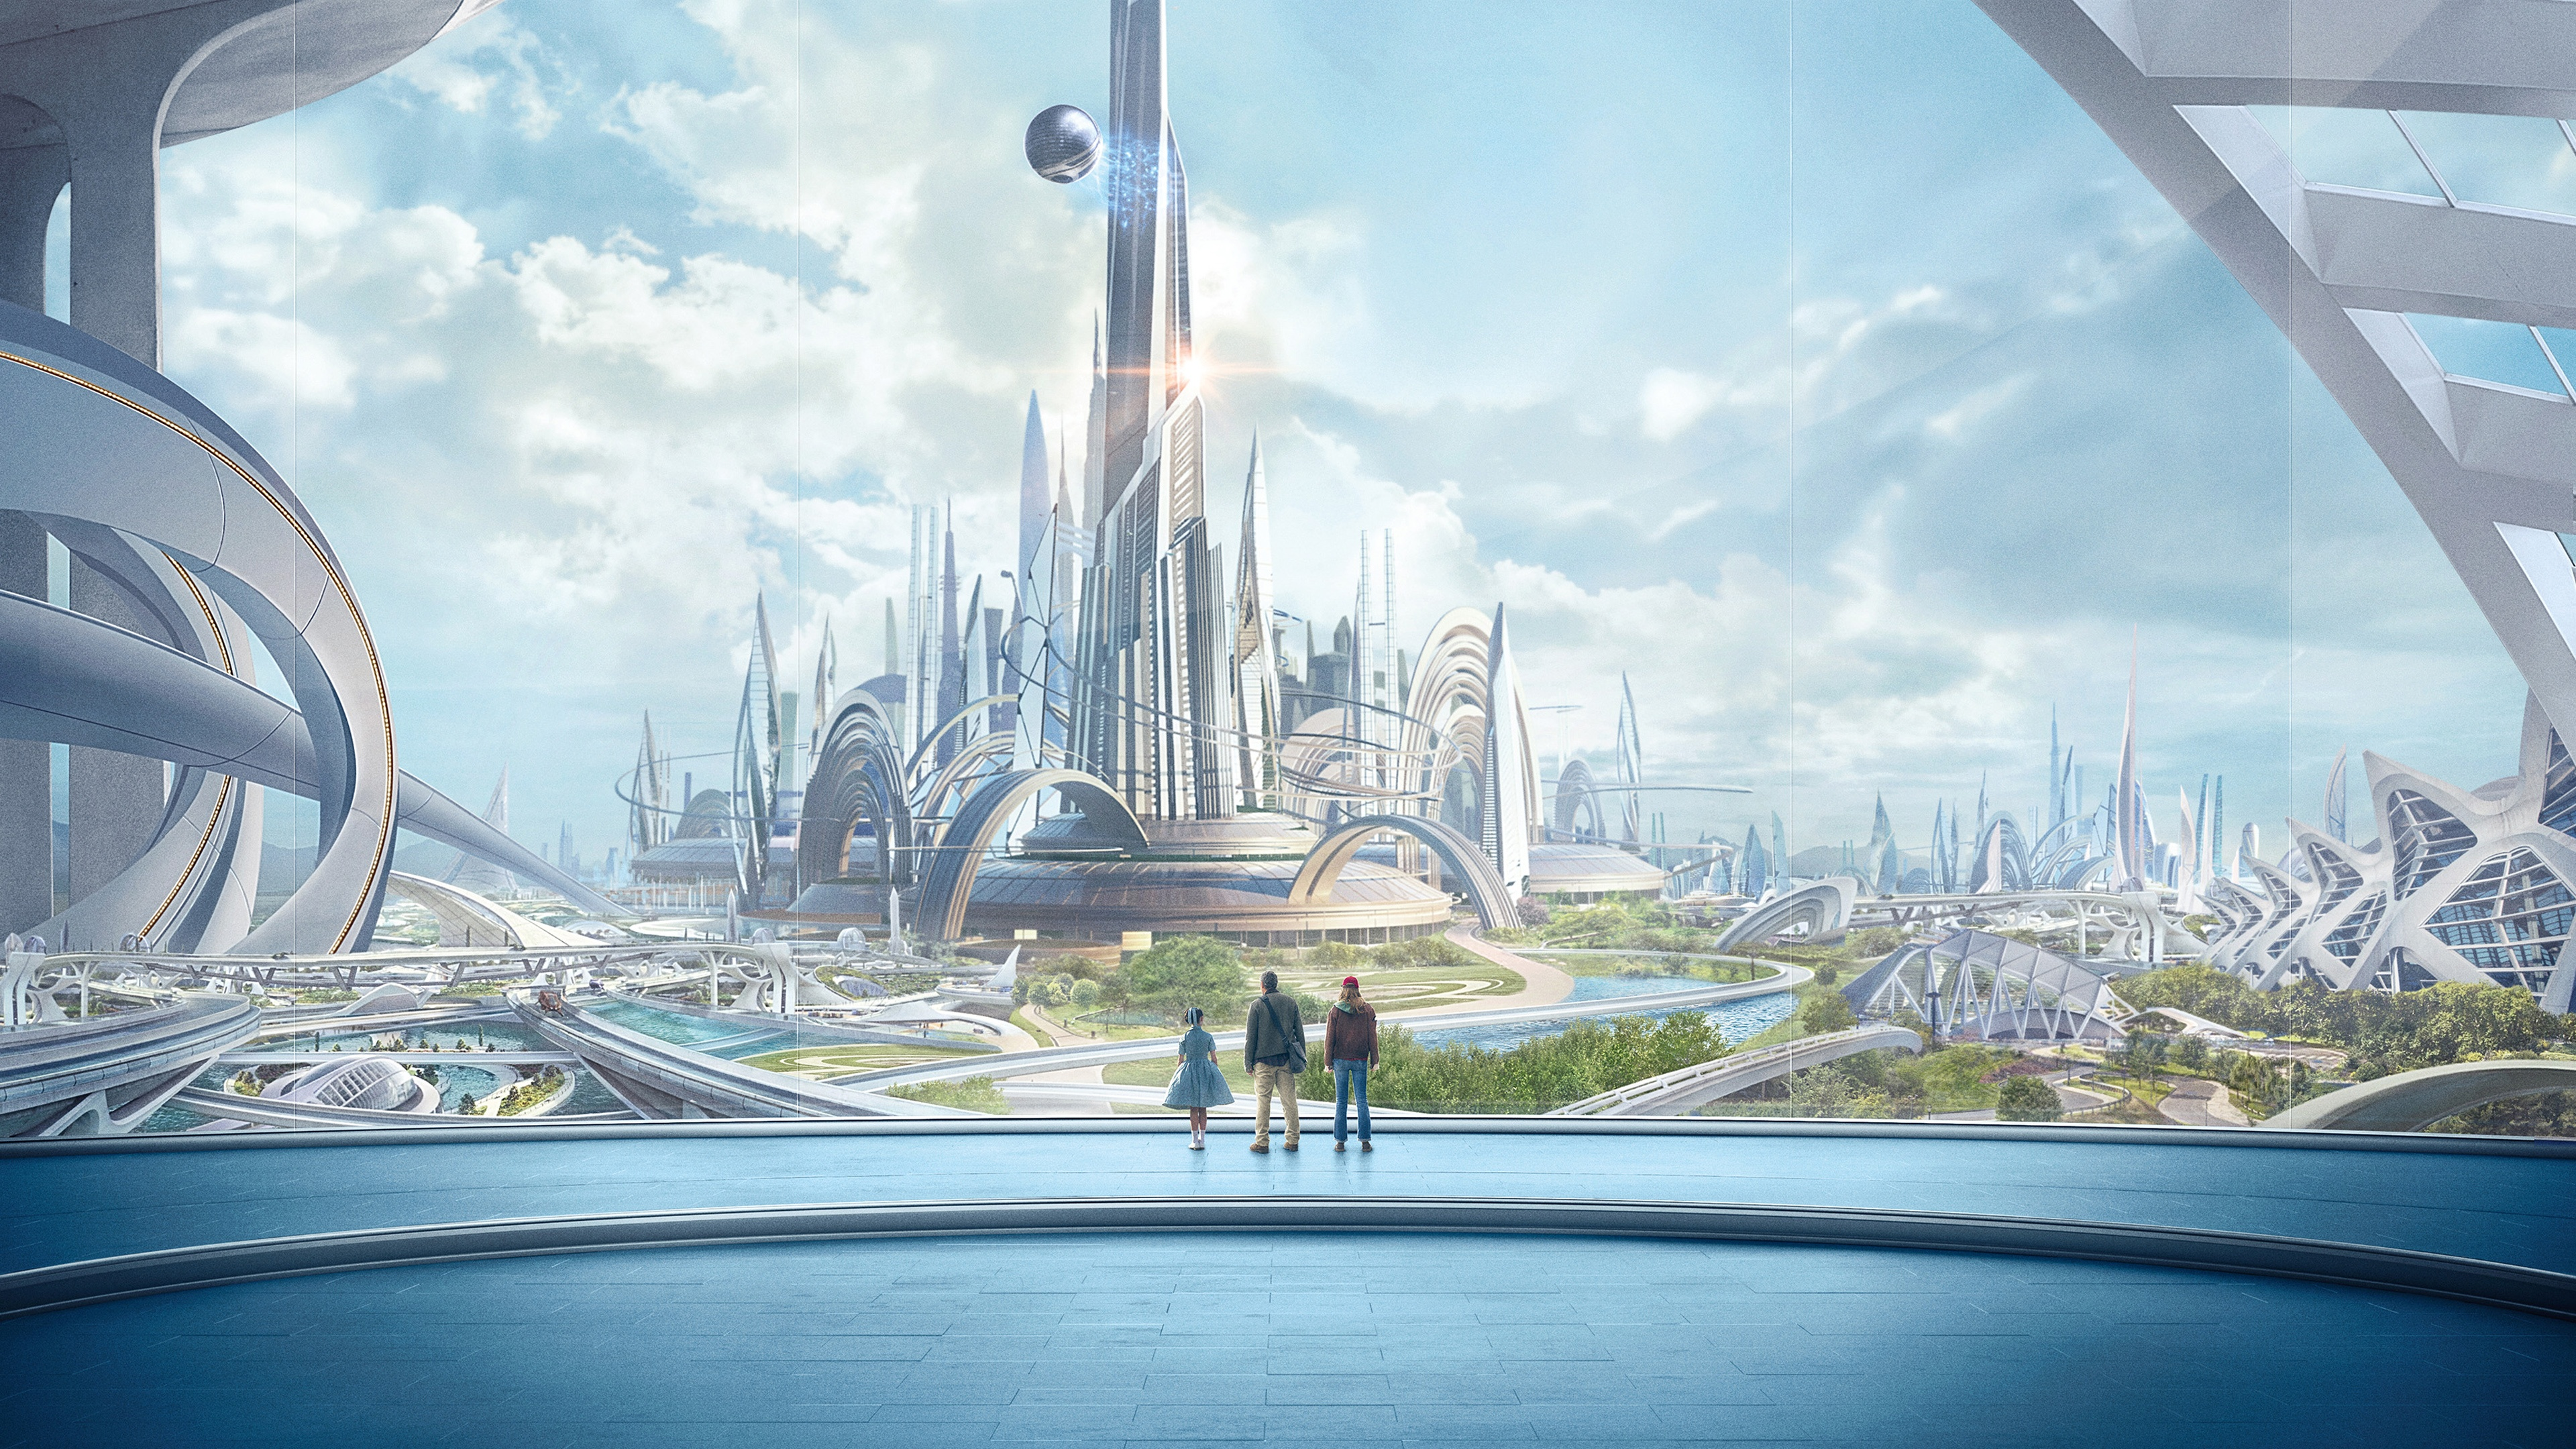 41 Tomorrowland Hd Wallpapers Background Images Wallpaper Abyss